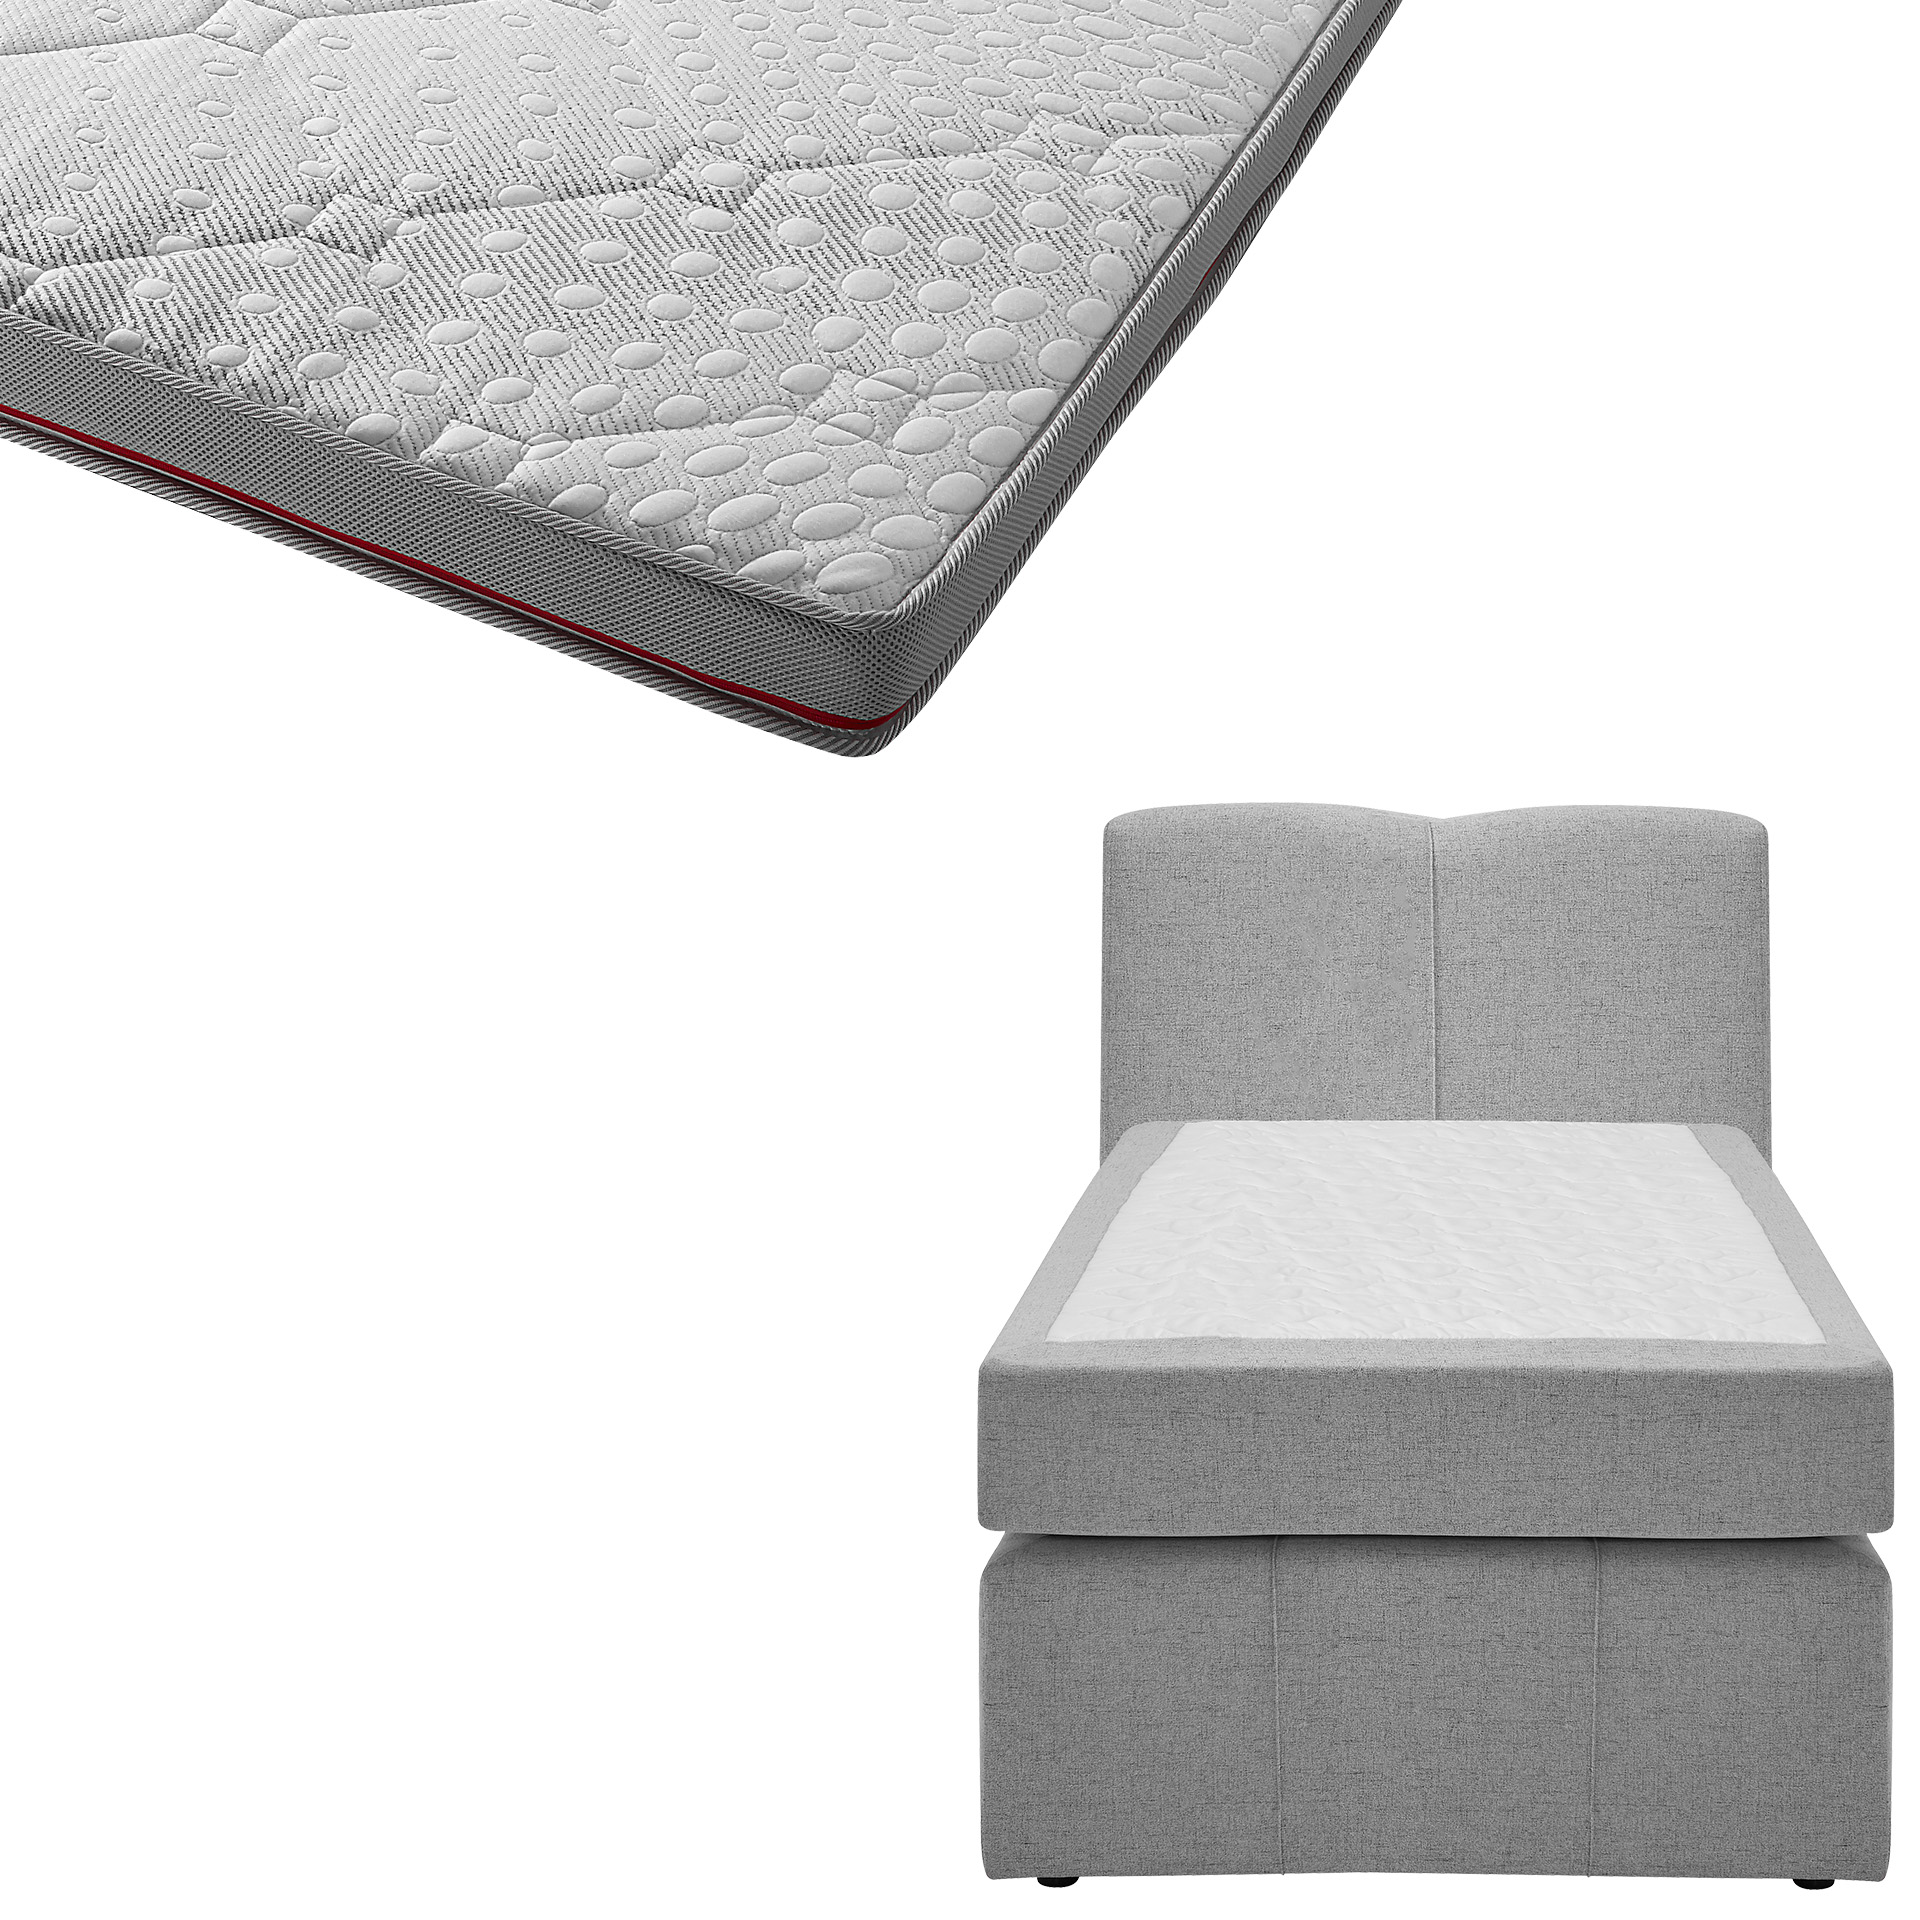 Boxspringbett-Set SUPERDREAM Kolding/SUPERDREAM Premium-Visko-Topper (90x200)